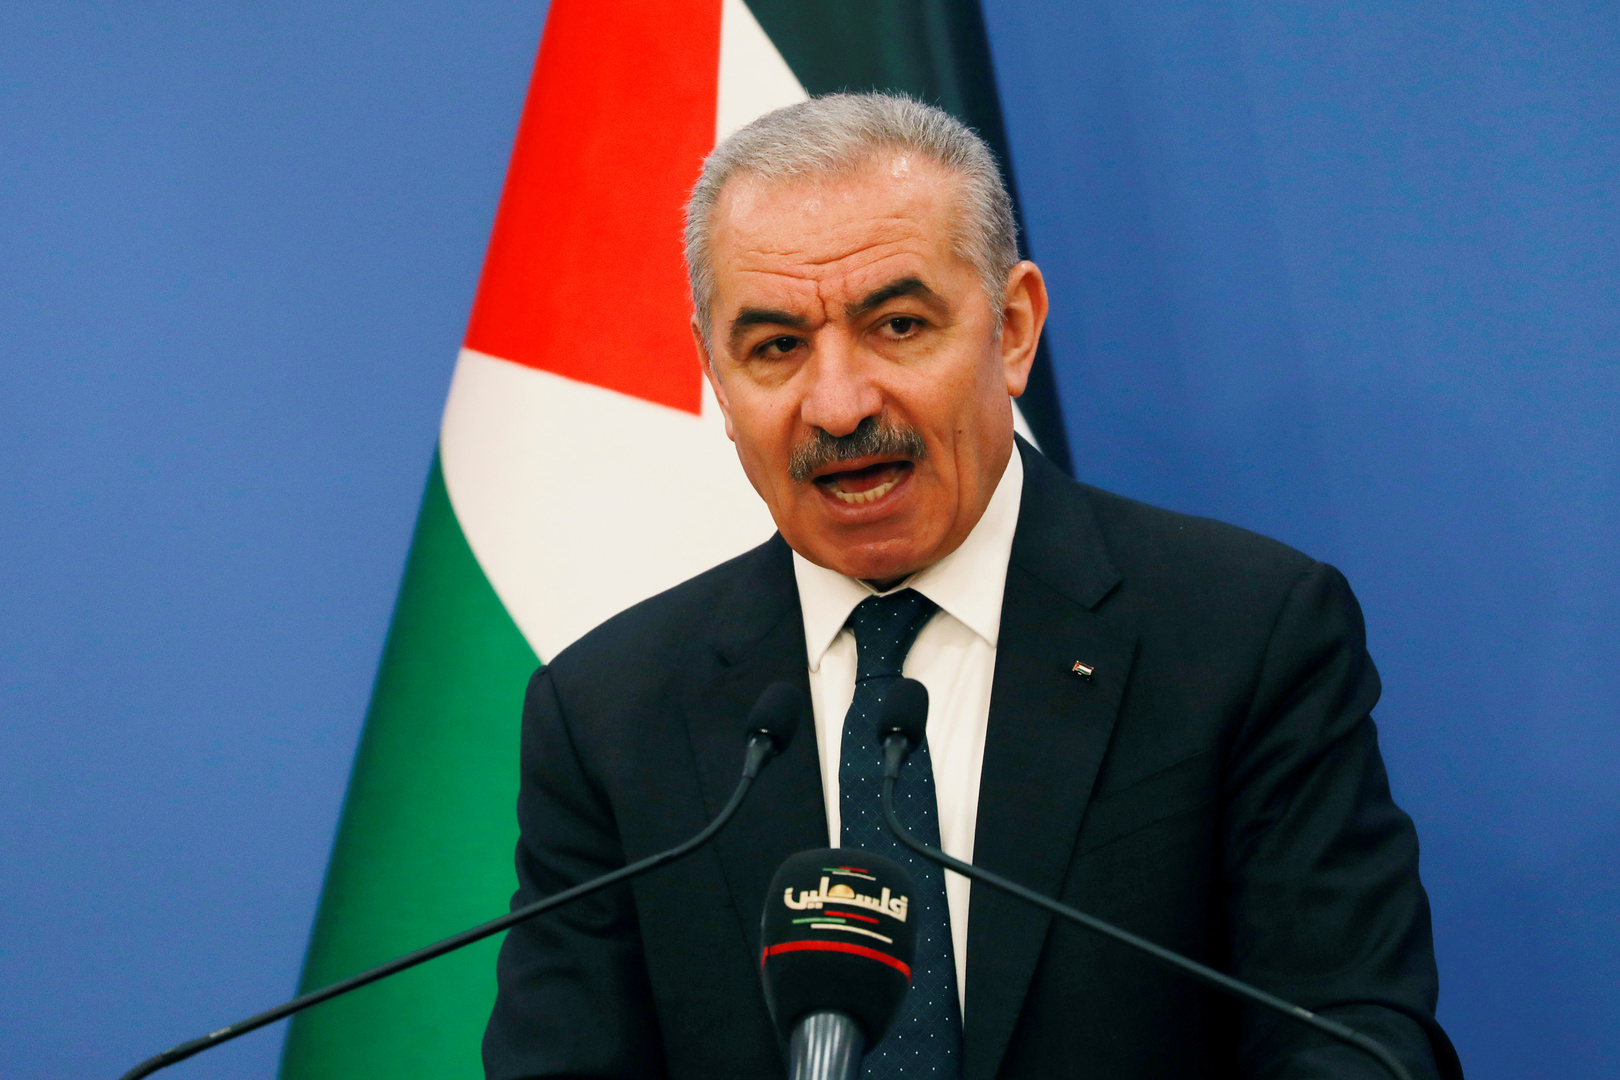 Palestinian Prime Minister warns of the project